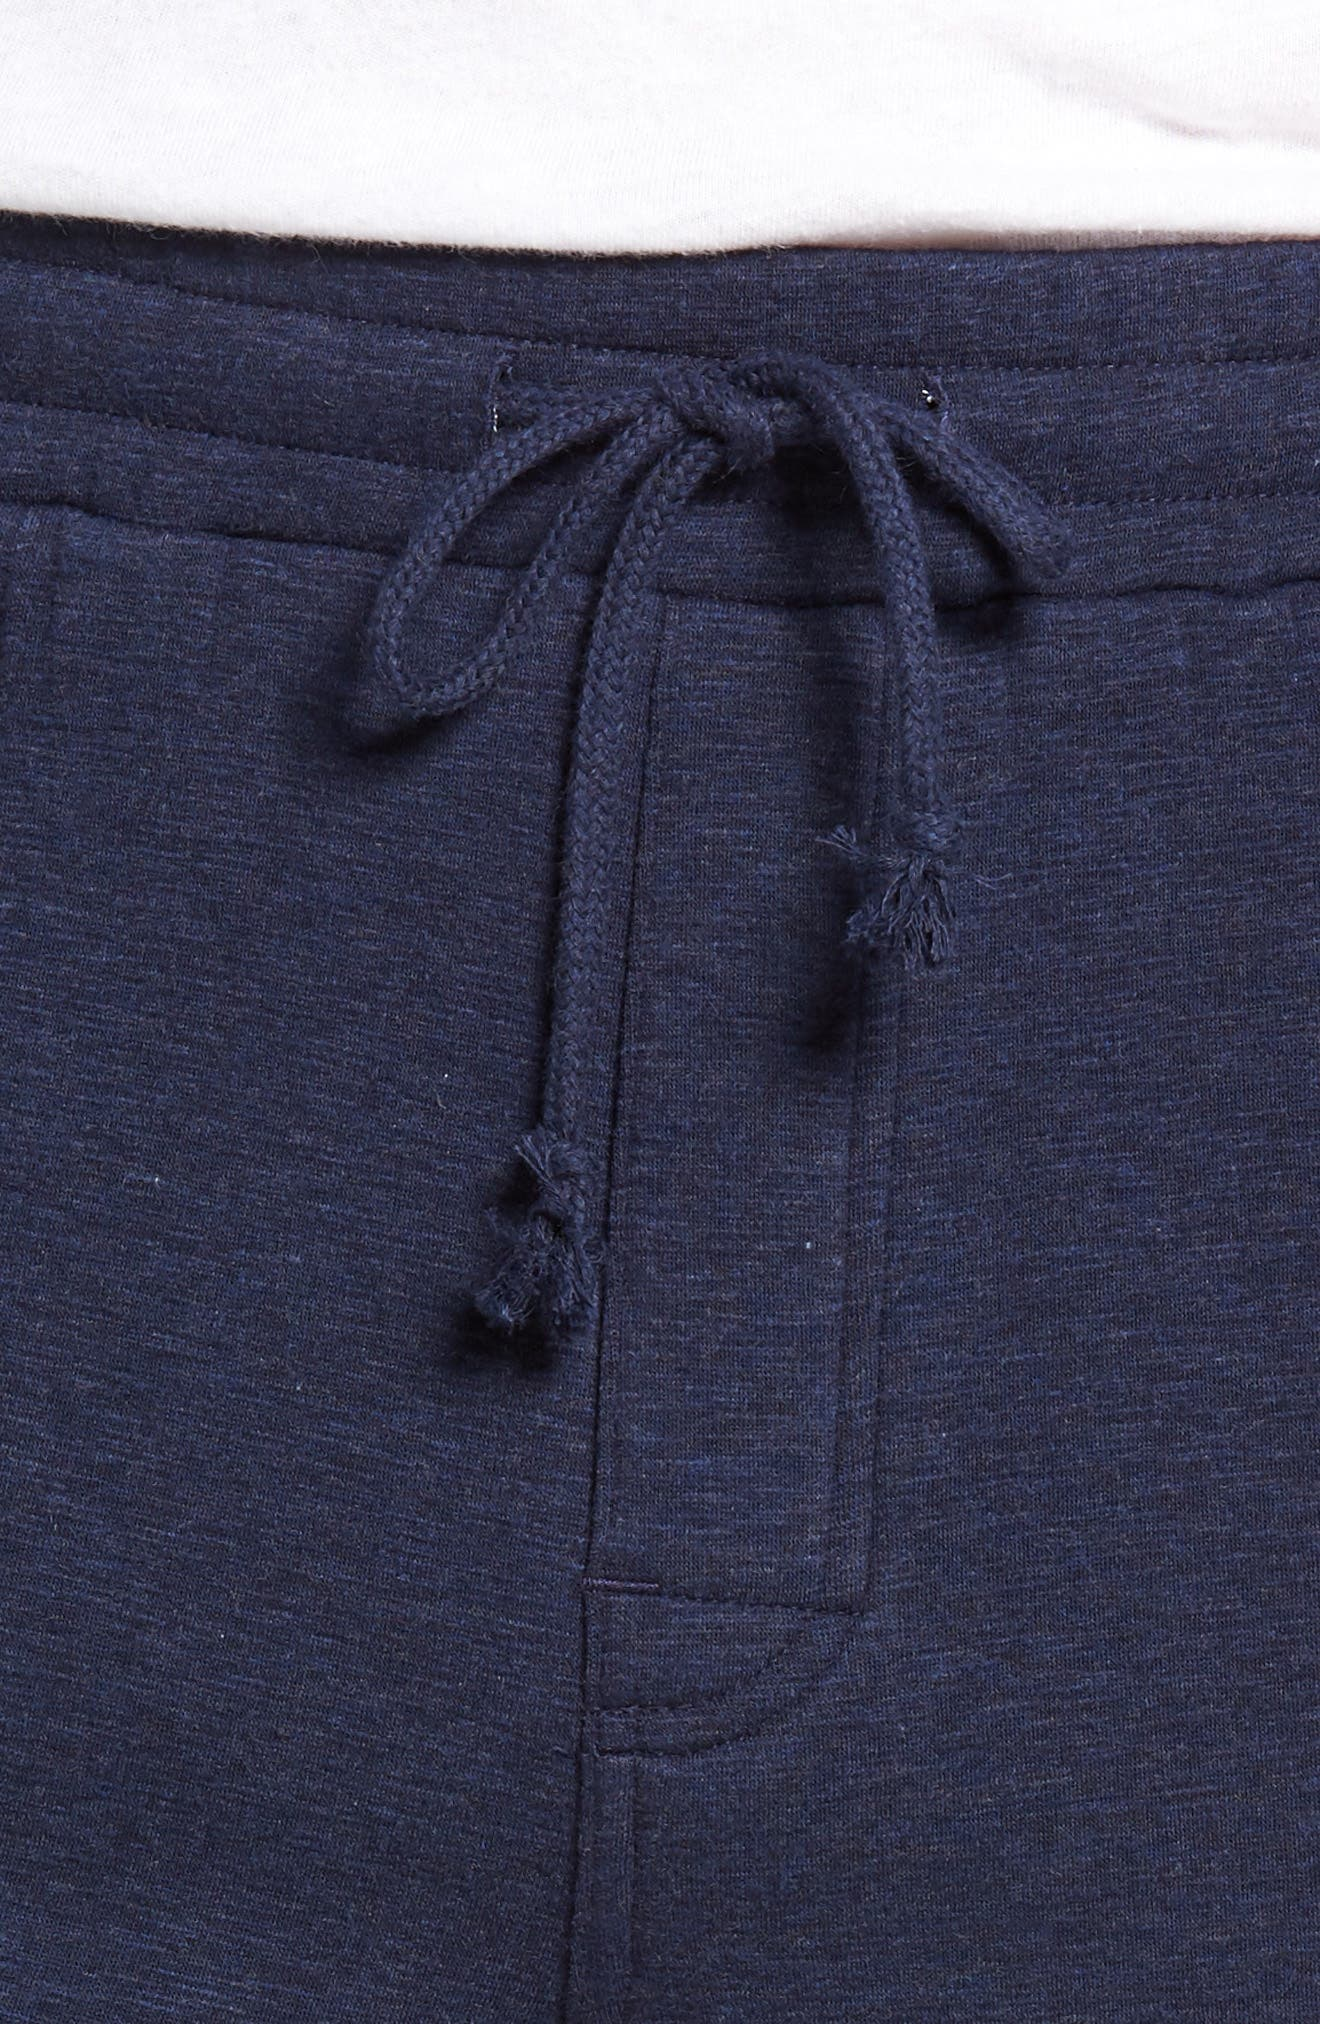 French Terry Pajama Pants,                             Alternate thumbnail 12, color,